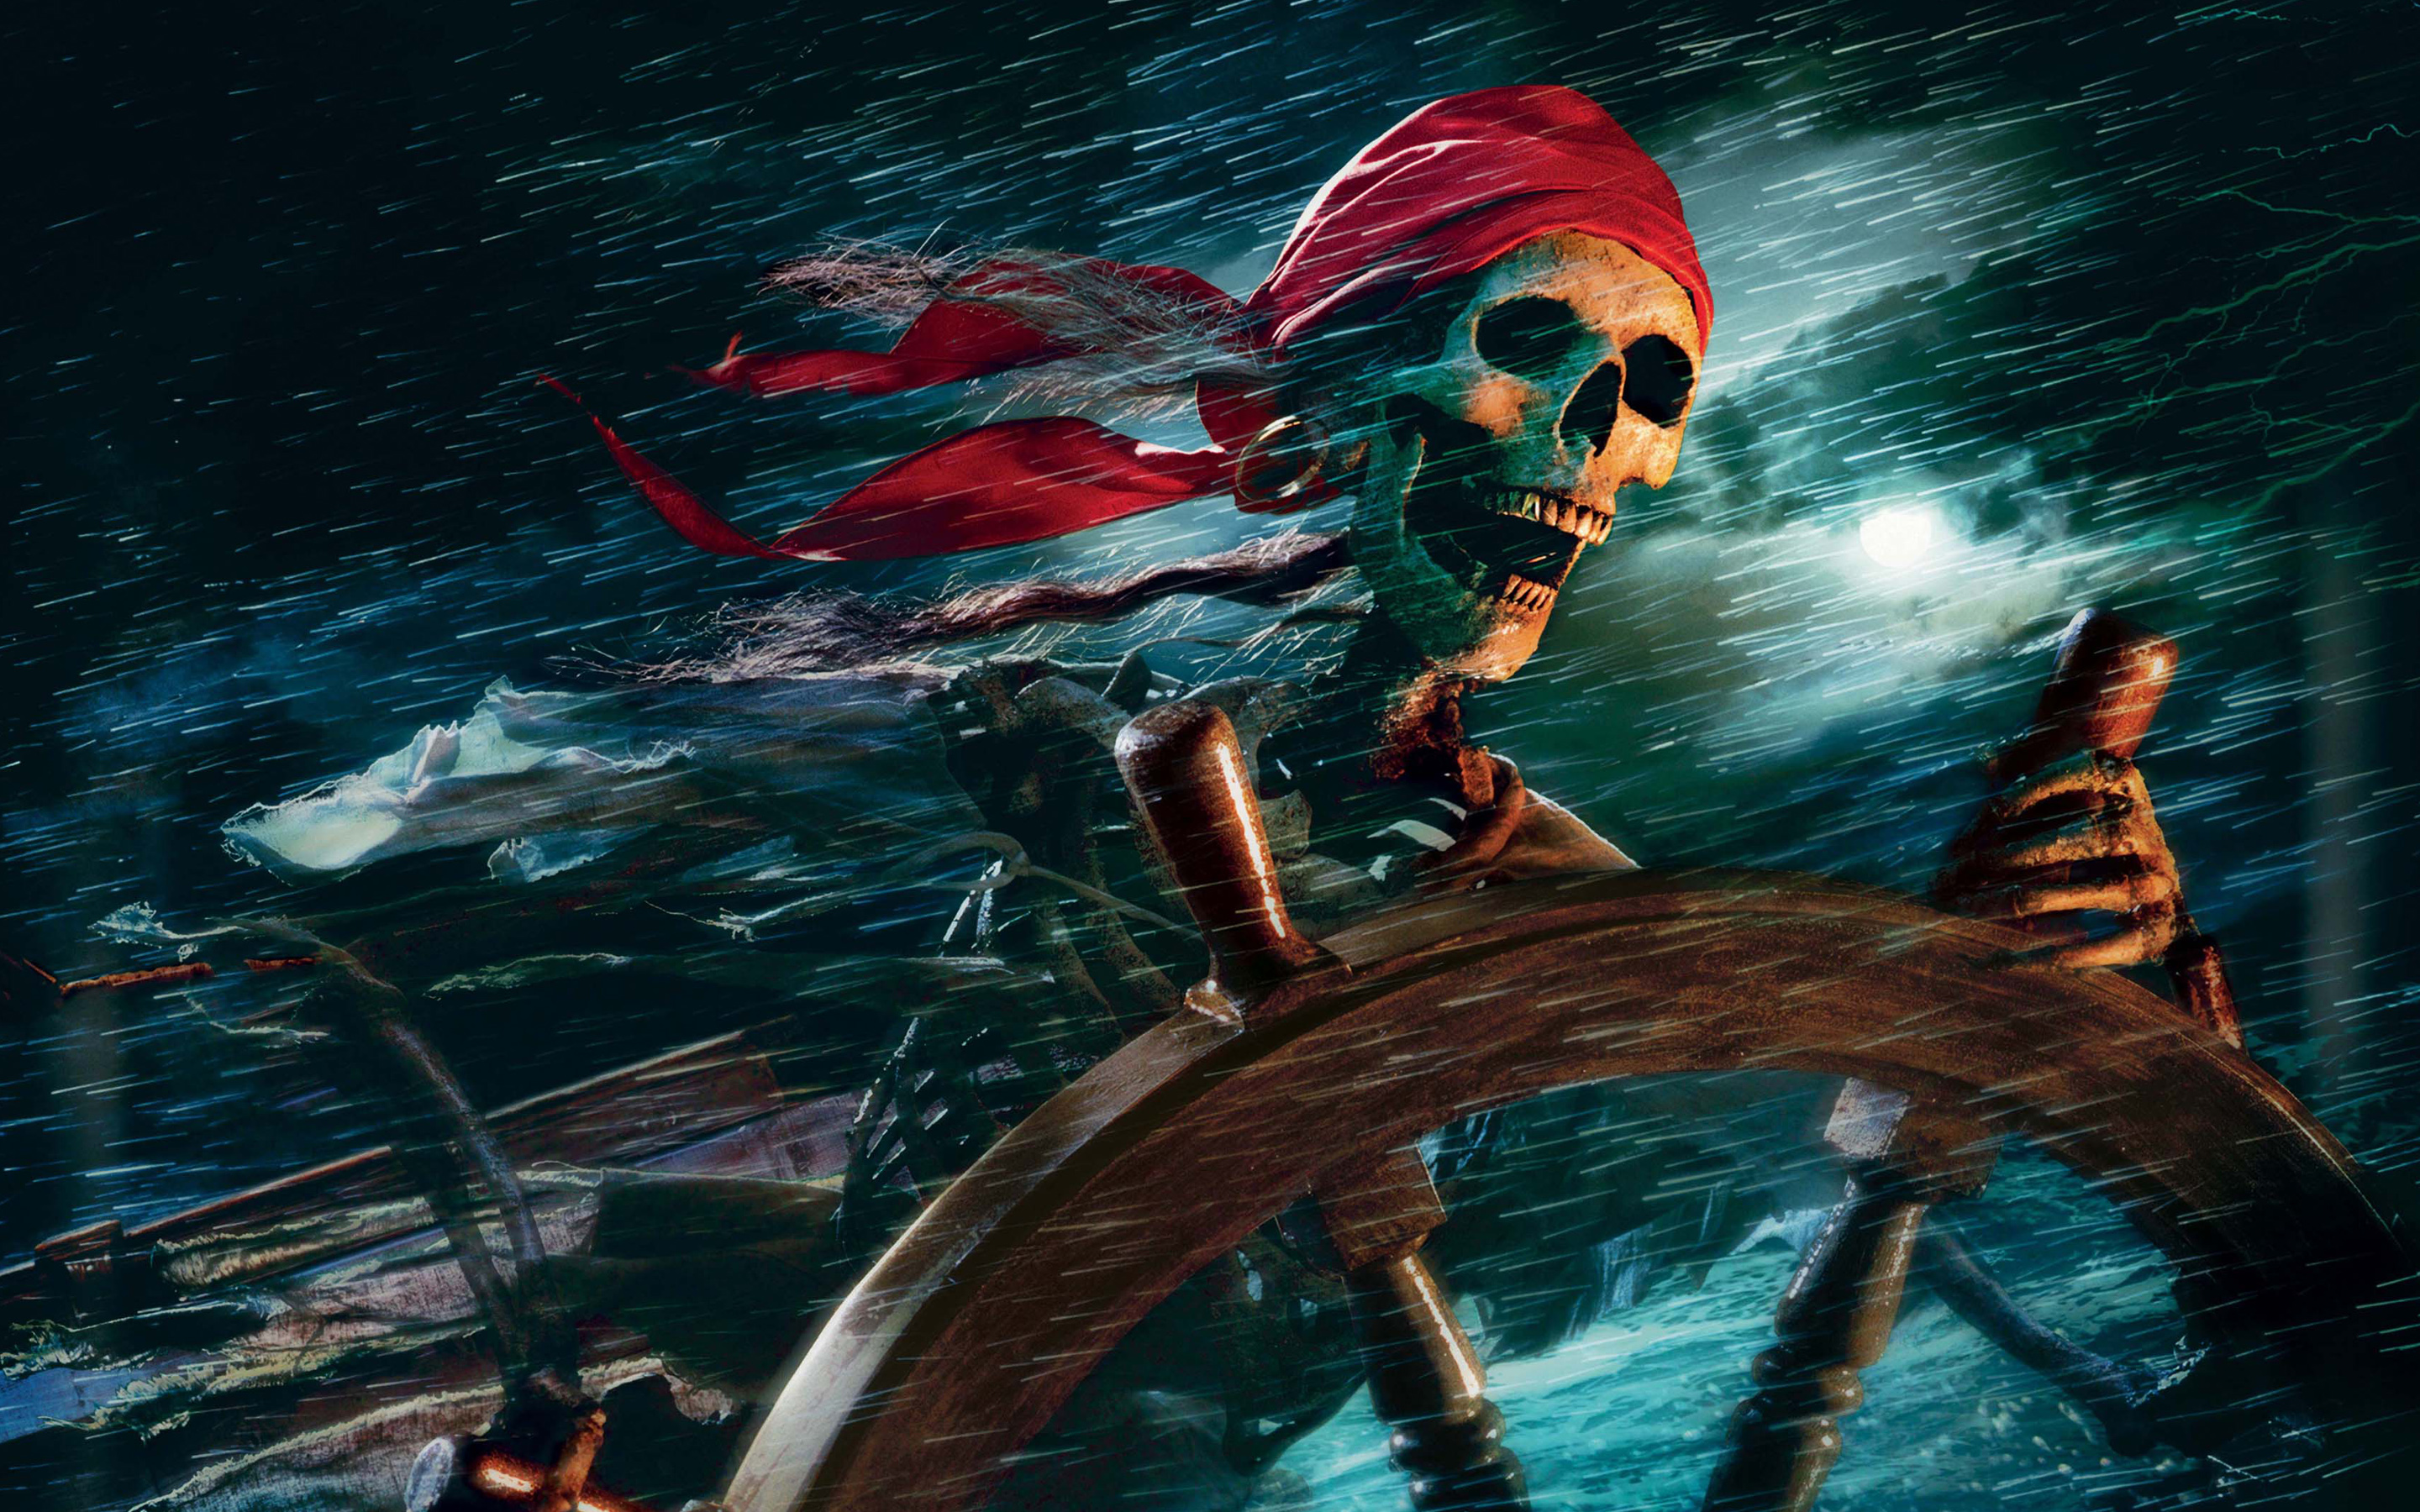 Sea Pirate